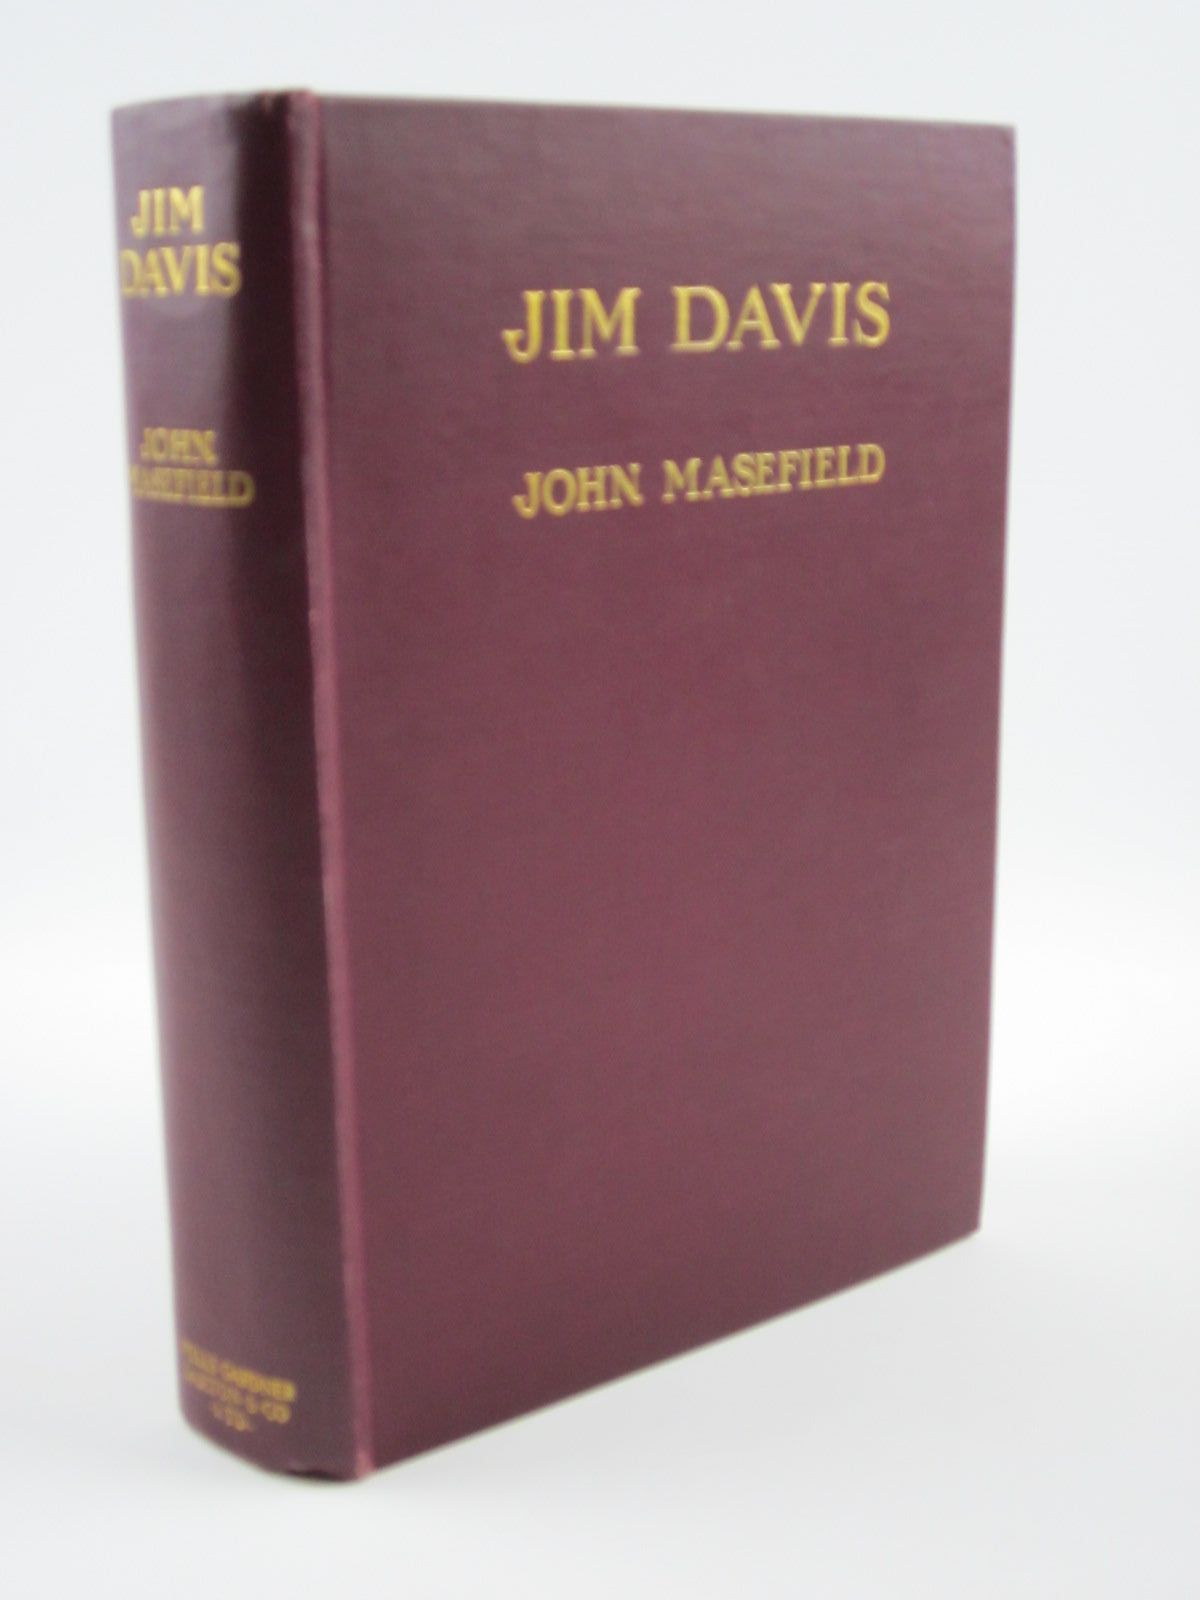 Photo of JIM DAVIS written by Masefield, John illustrated by Schaeffer, Mead published by Wells Gardner, Darton & Co. Limited (STOCK CODE: 1501303)  for sale by Stella & Rose's Books